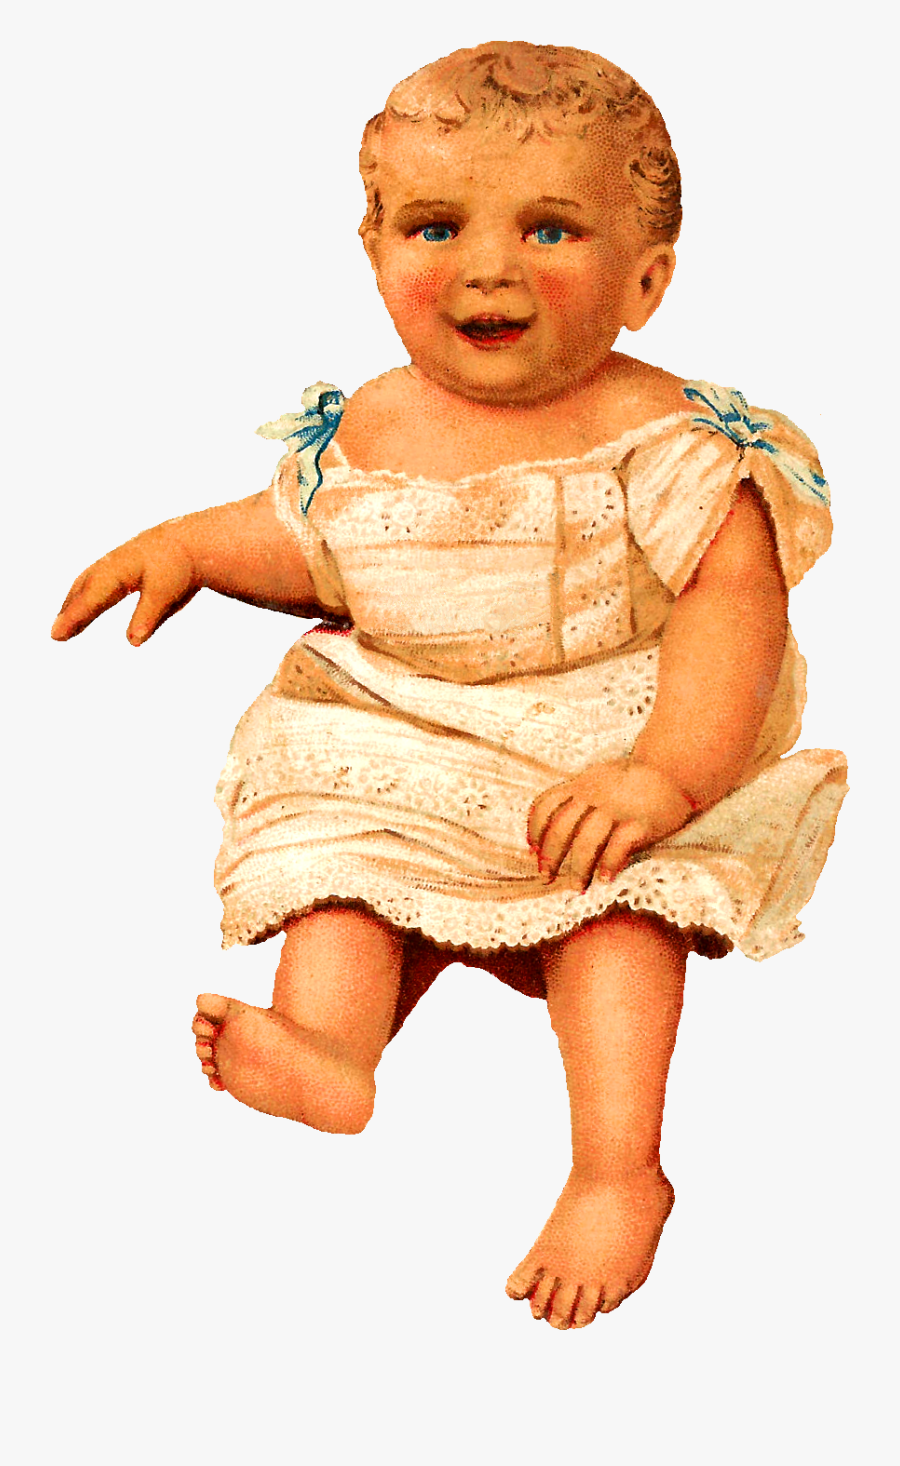 Baby Stock Photo Png, Transparent Clipart